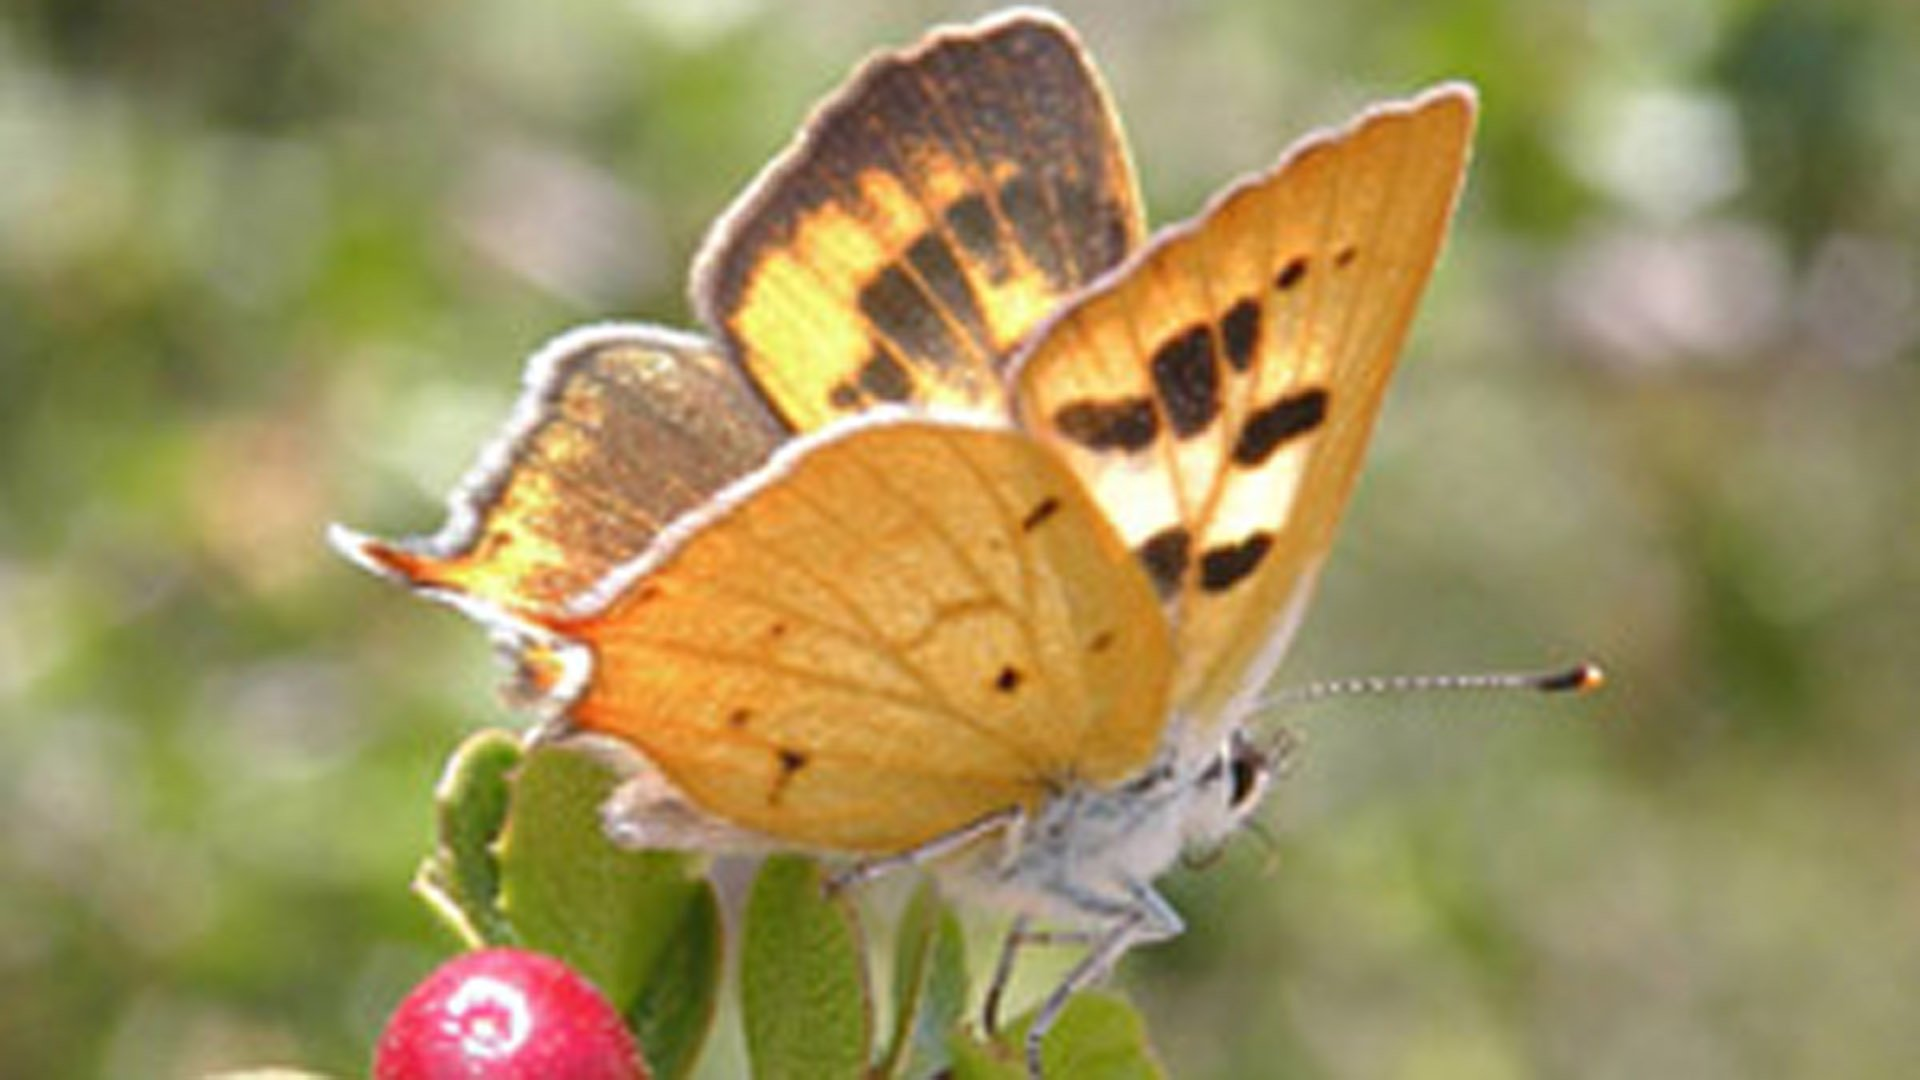 The Hermes copper butterfly is seen in a photo provided by the U.S. Fish and Wildlife Service.